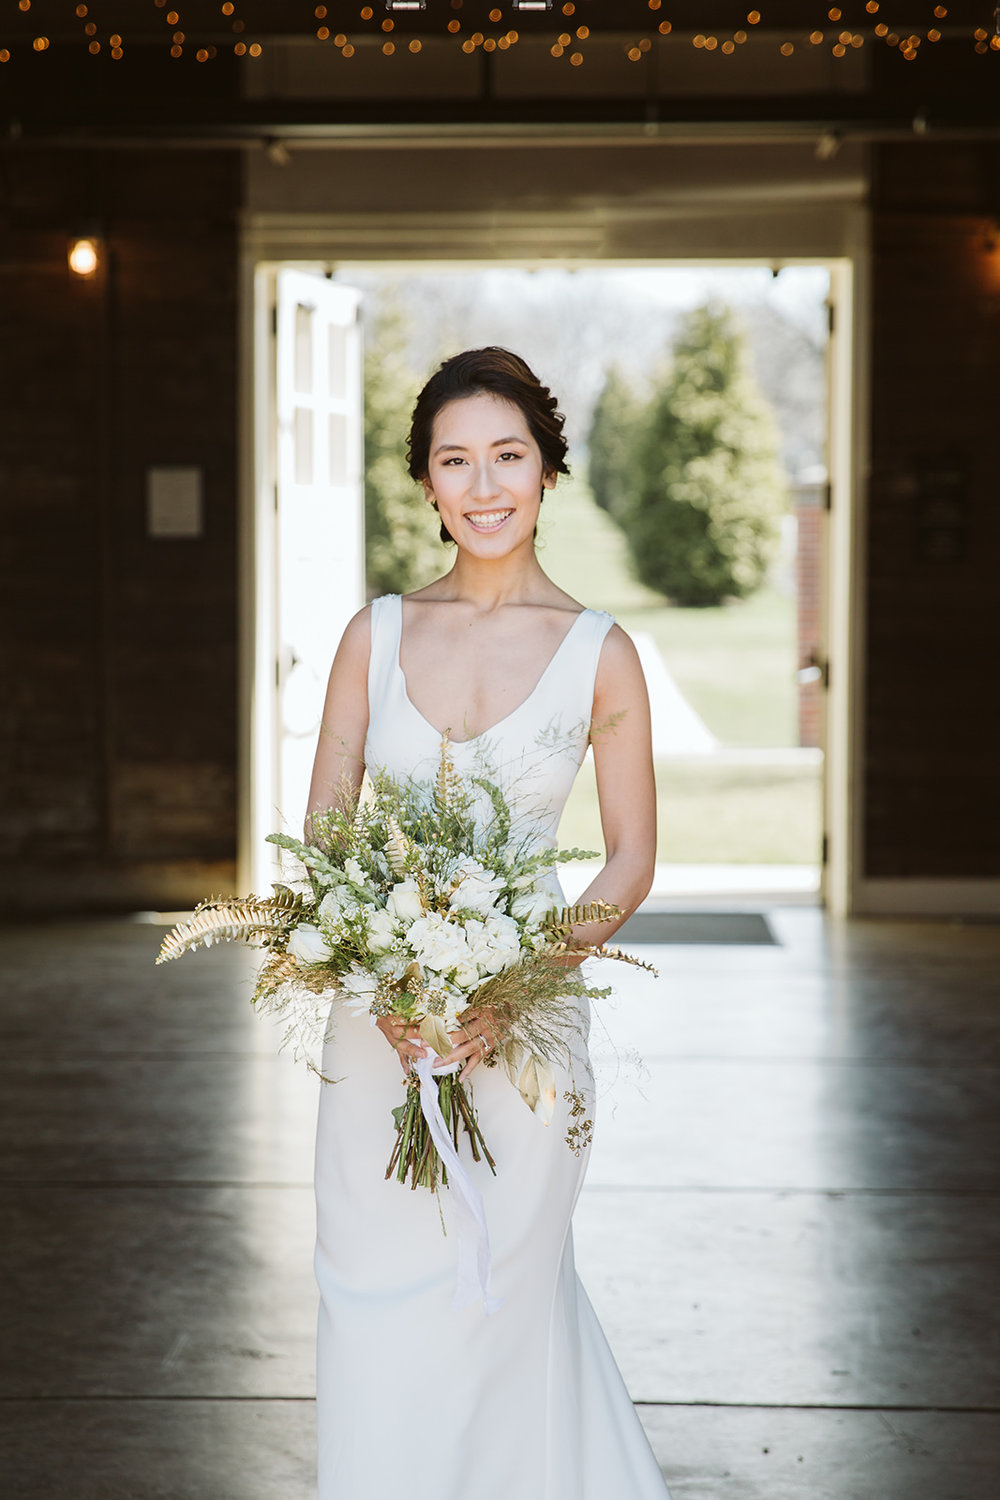 Gorgeous bride with curly updo